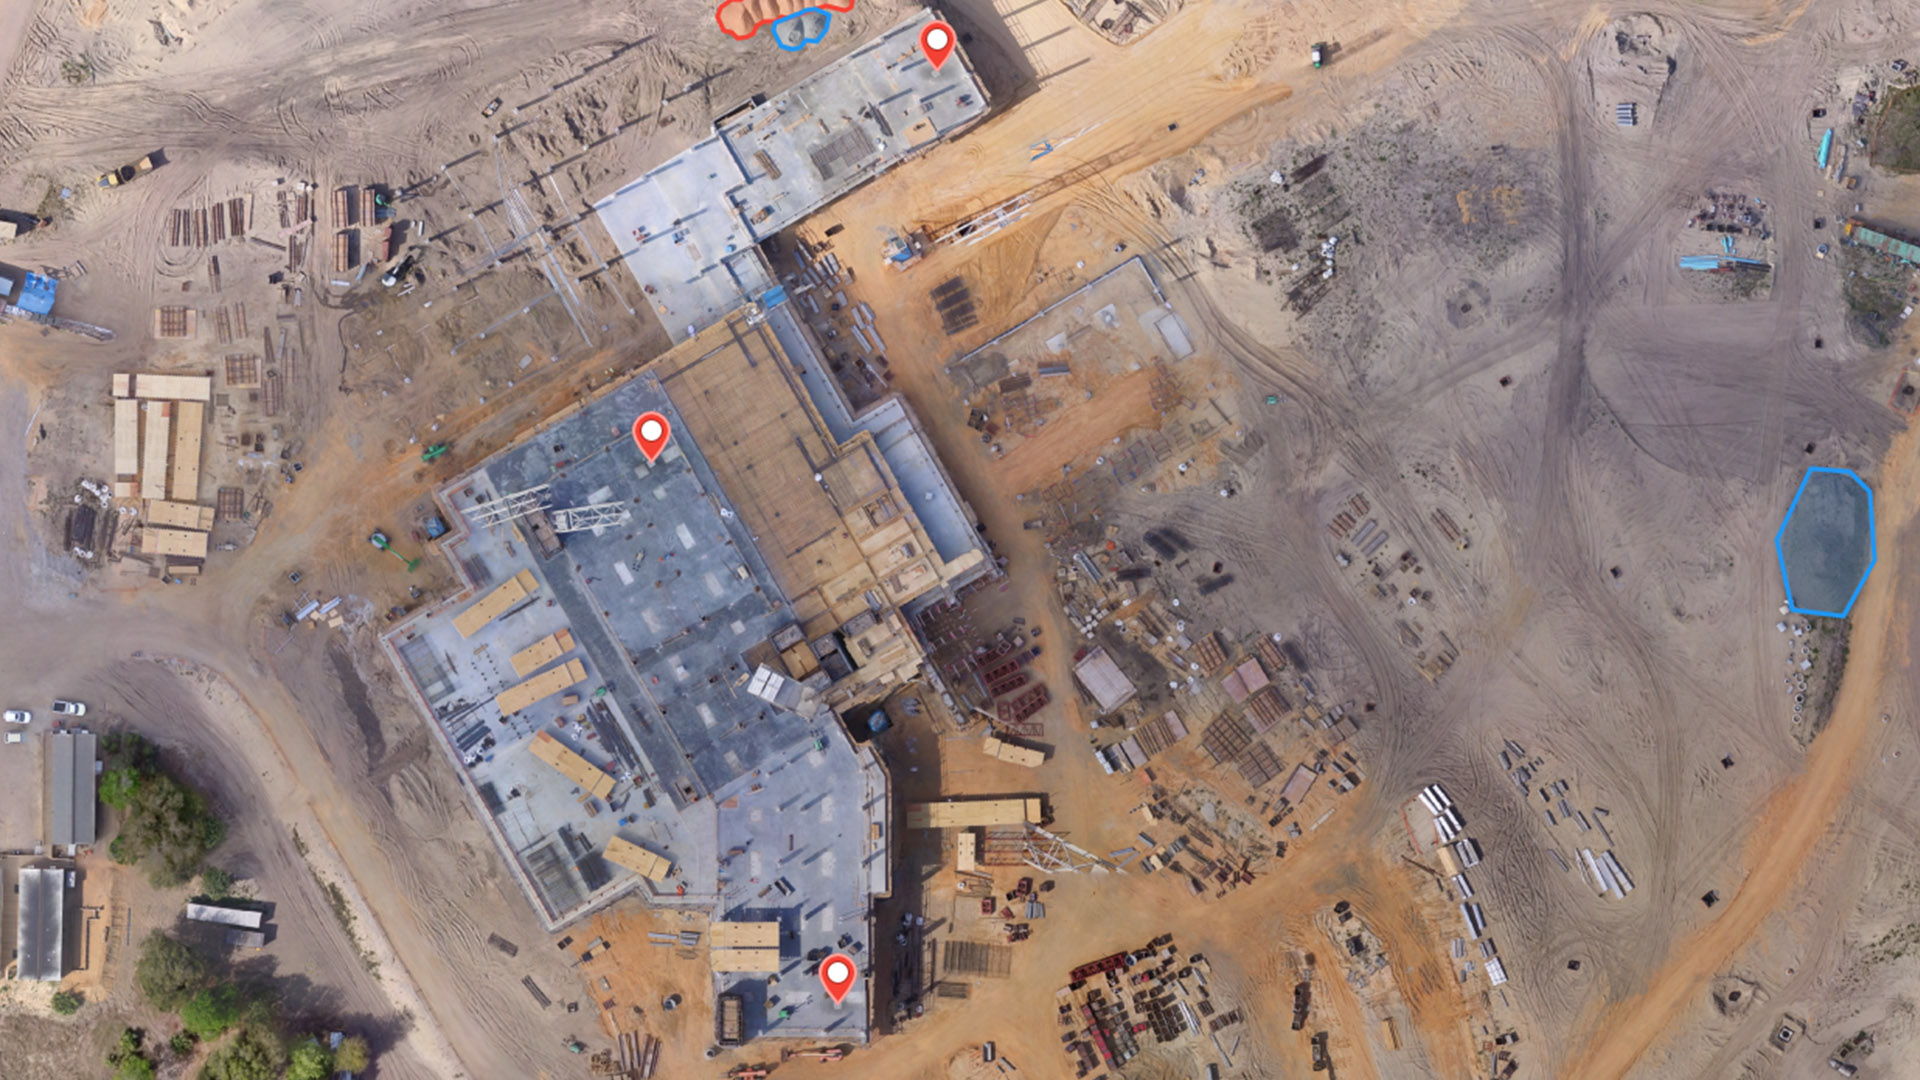 Drones are gathering crutial data on construction sites